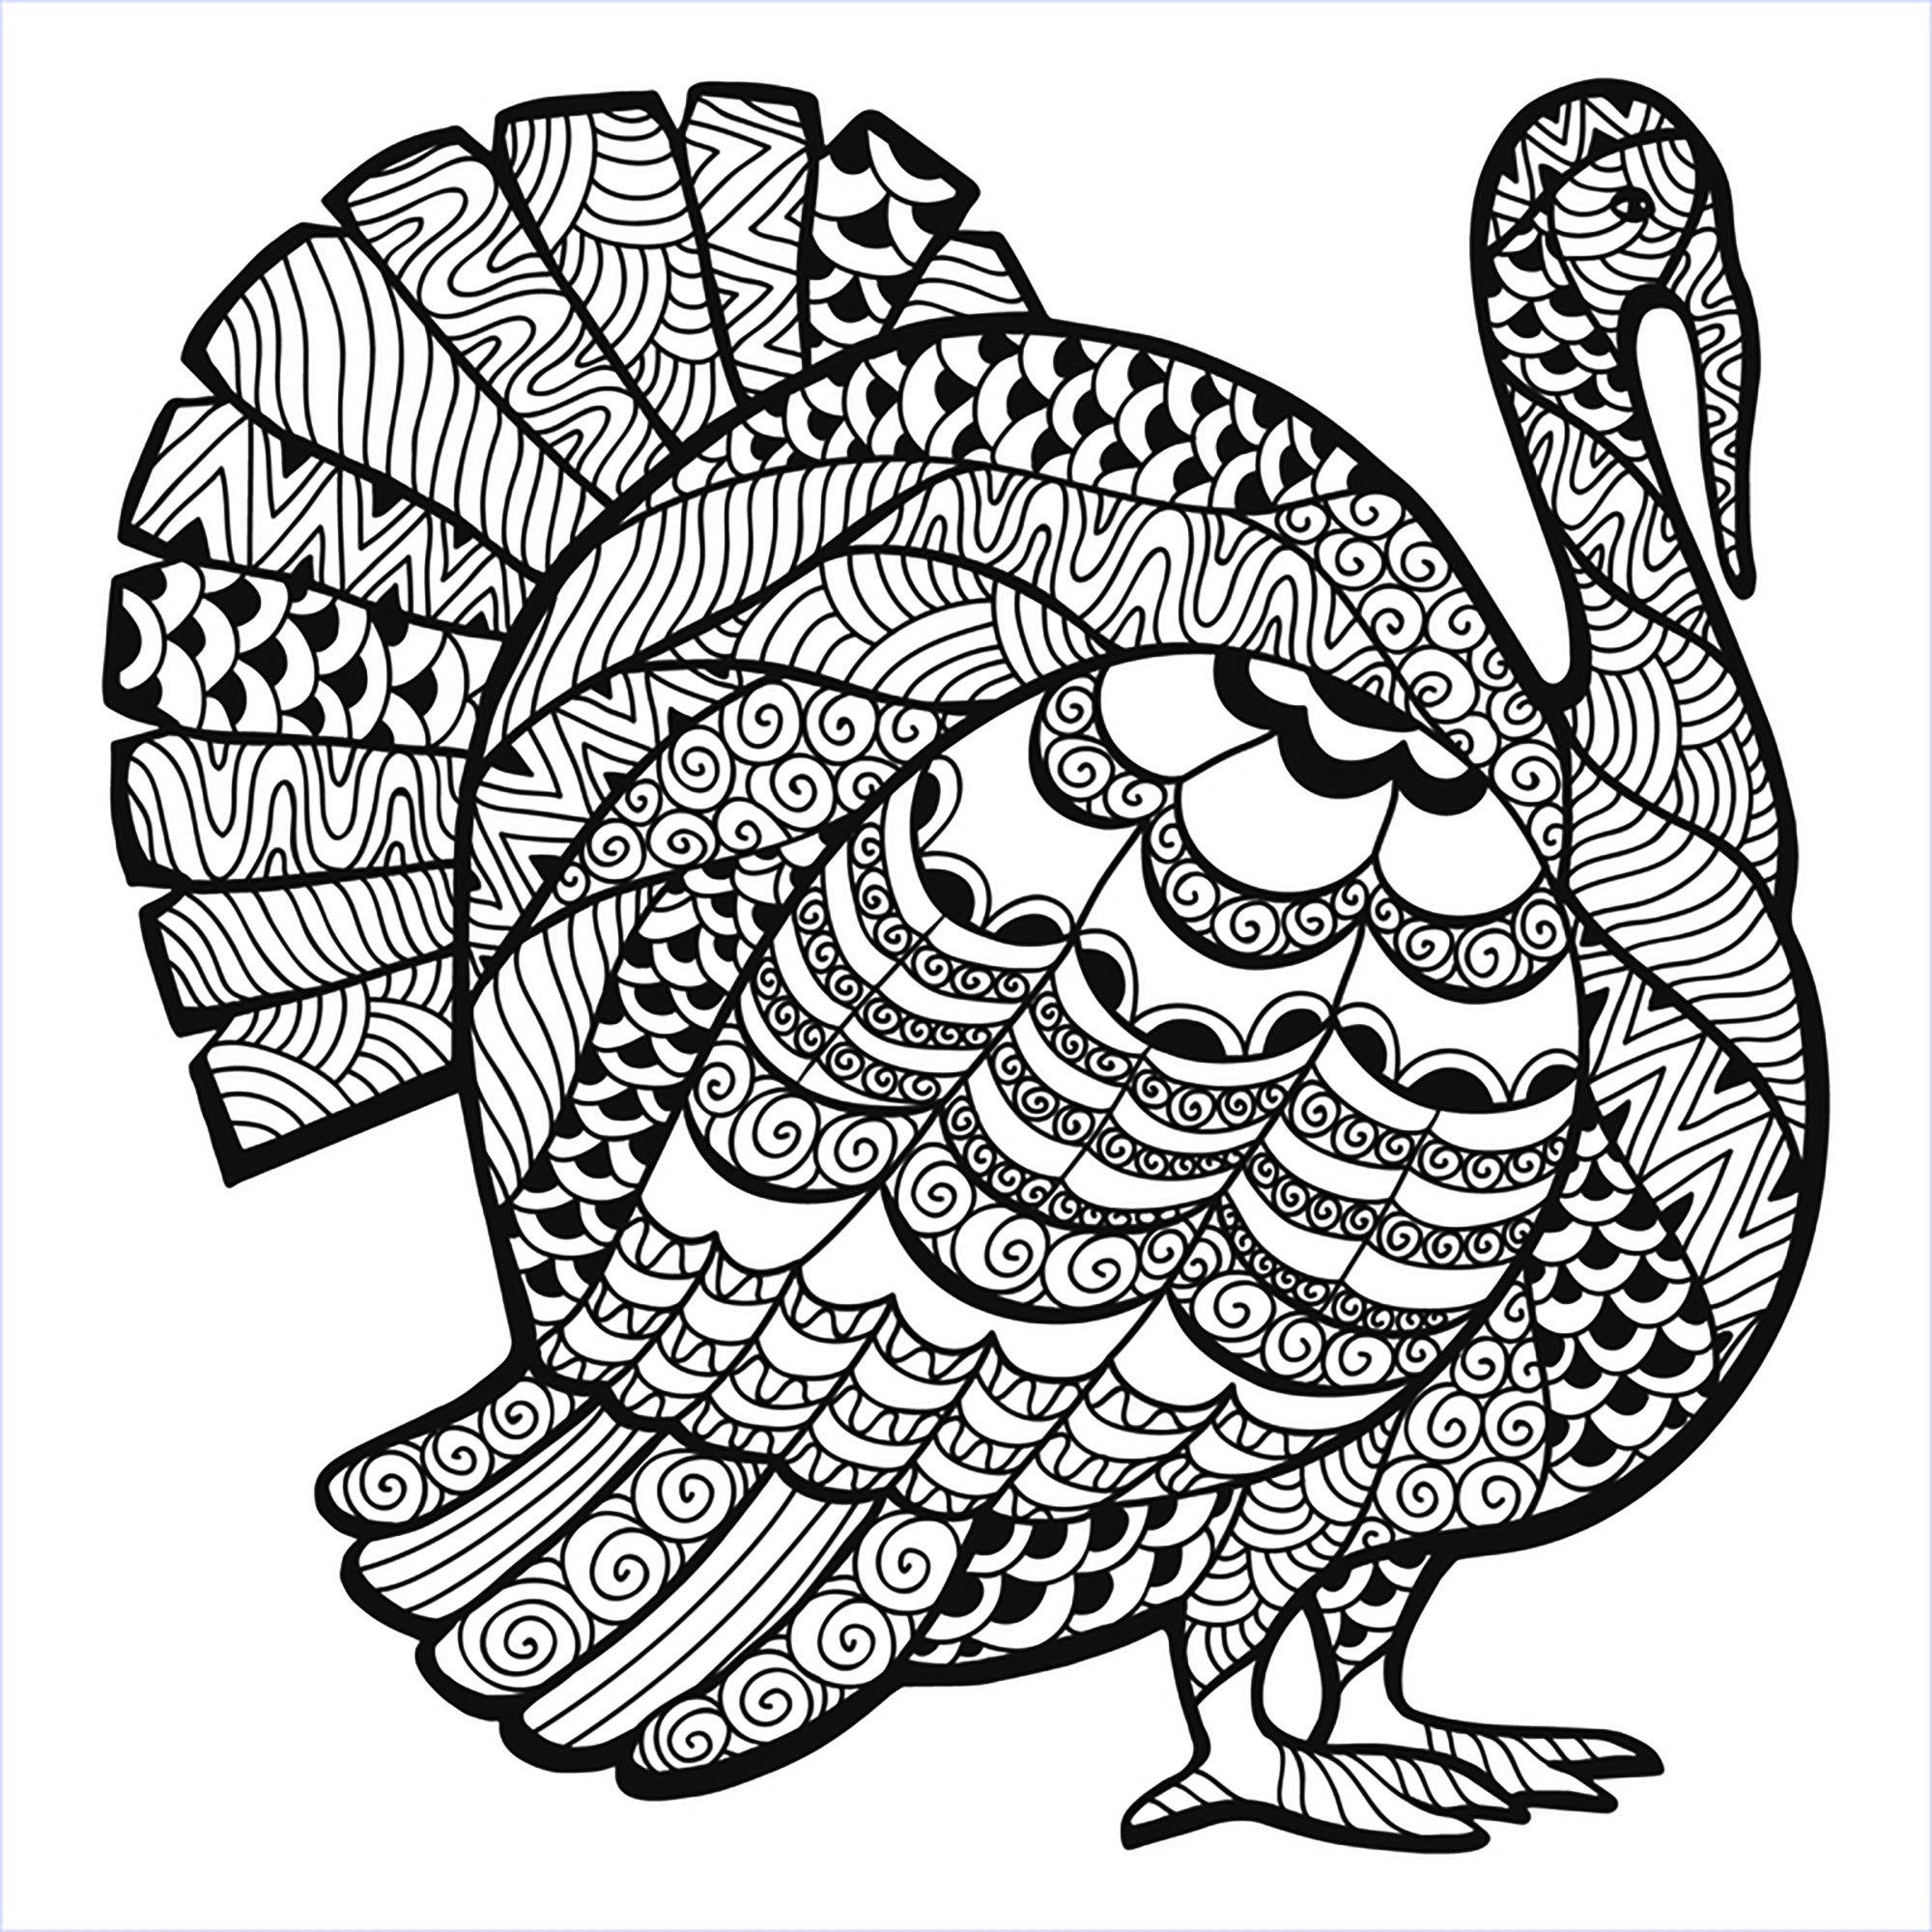 Coloring pages for adults zentangle - Thanksgiving Turkey Zentangle Coloring Page From The Gallery Events Thanksgiving Artist Lena